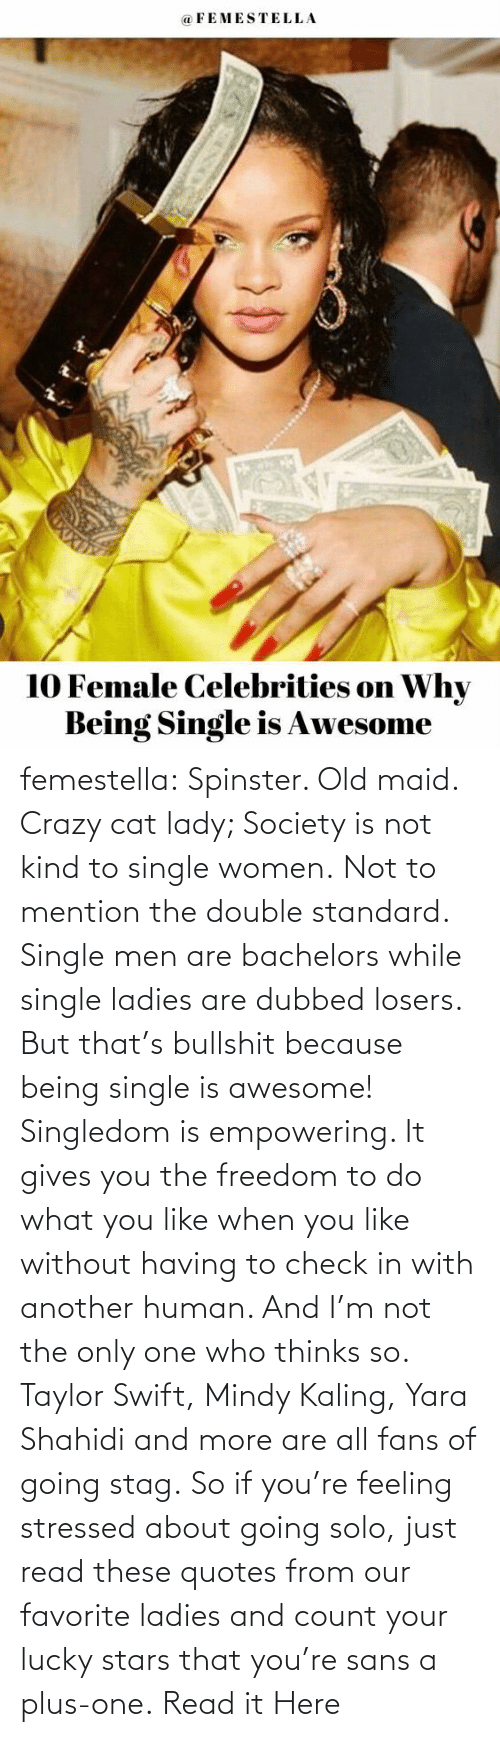 lady: femestella: Spinster. Old maid. Crazy cat lady; Society is not kind to single women. Not to mention the double standard. Single men are bachelors while single ladies are dubbed losers. But that's bullshit because being single is awesome! Singledom is empowering. It gives you the freedom to do what you like when you like without having to check in with another human. And I'm not the only one who thinks so. Taylor Swift, Mindy Kaling, Yara Shahidi and more are all fans of going stag. So if you're feeling stressed about going solo, just read these quotes from our favorite ladies and count your lucky stars that you're sans a plus-one. Read it Here